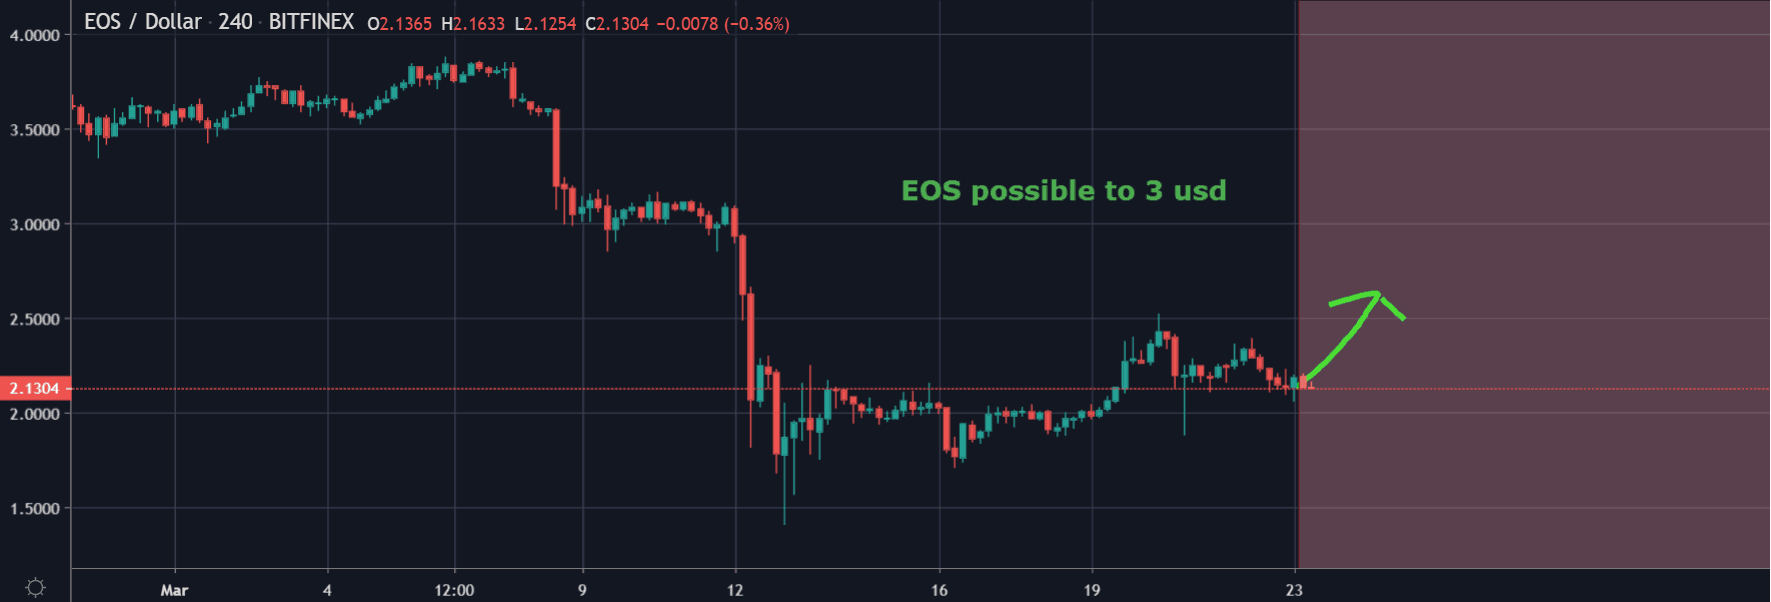 EOS Featured Price Chart